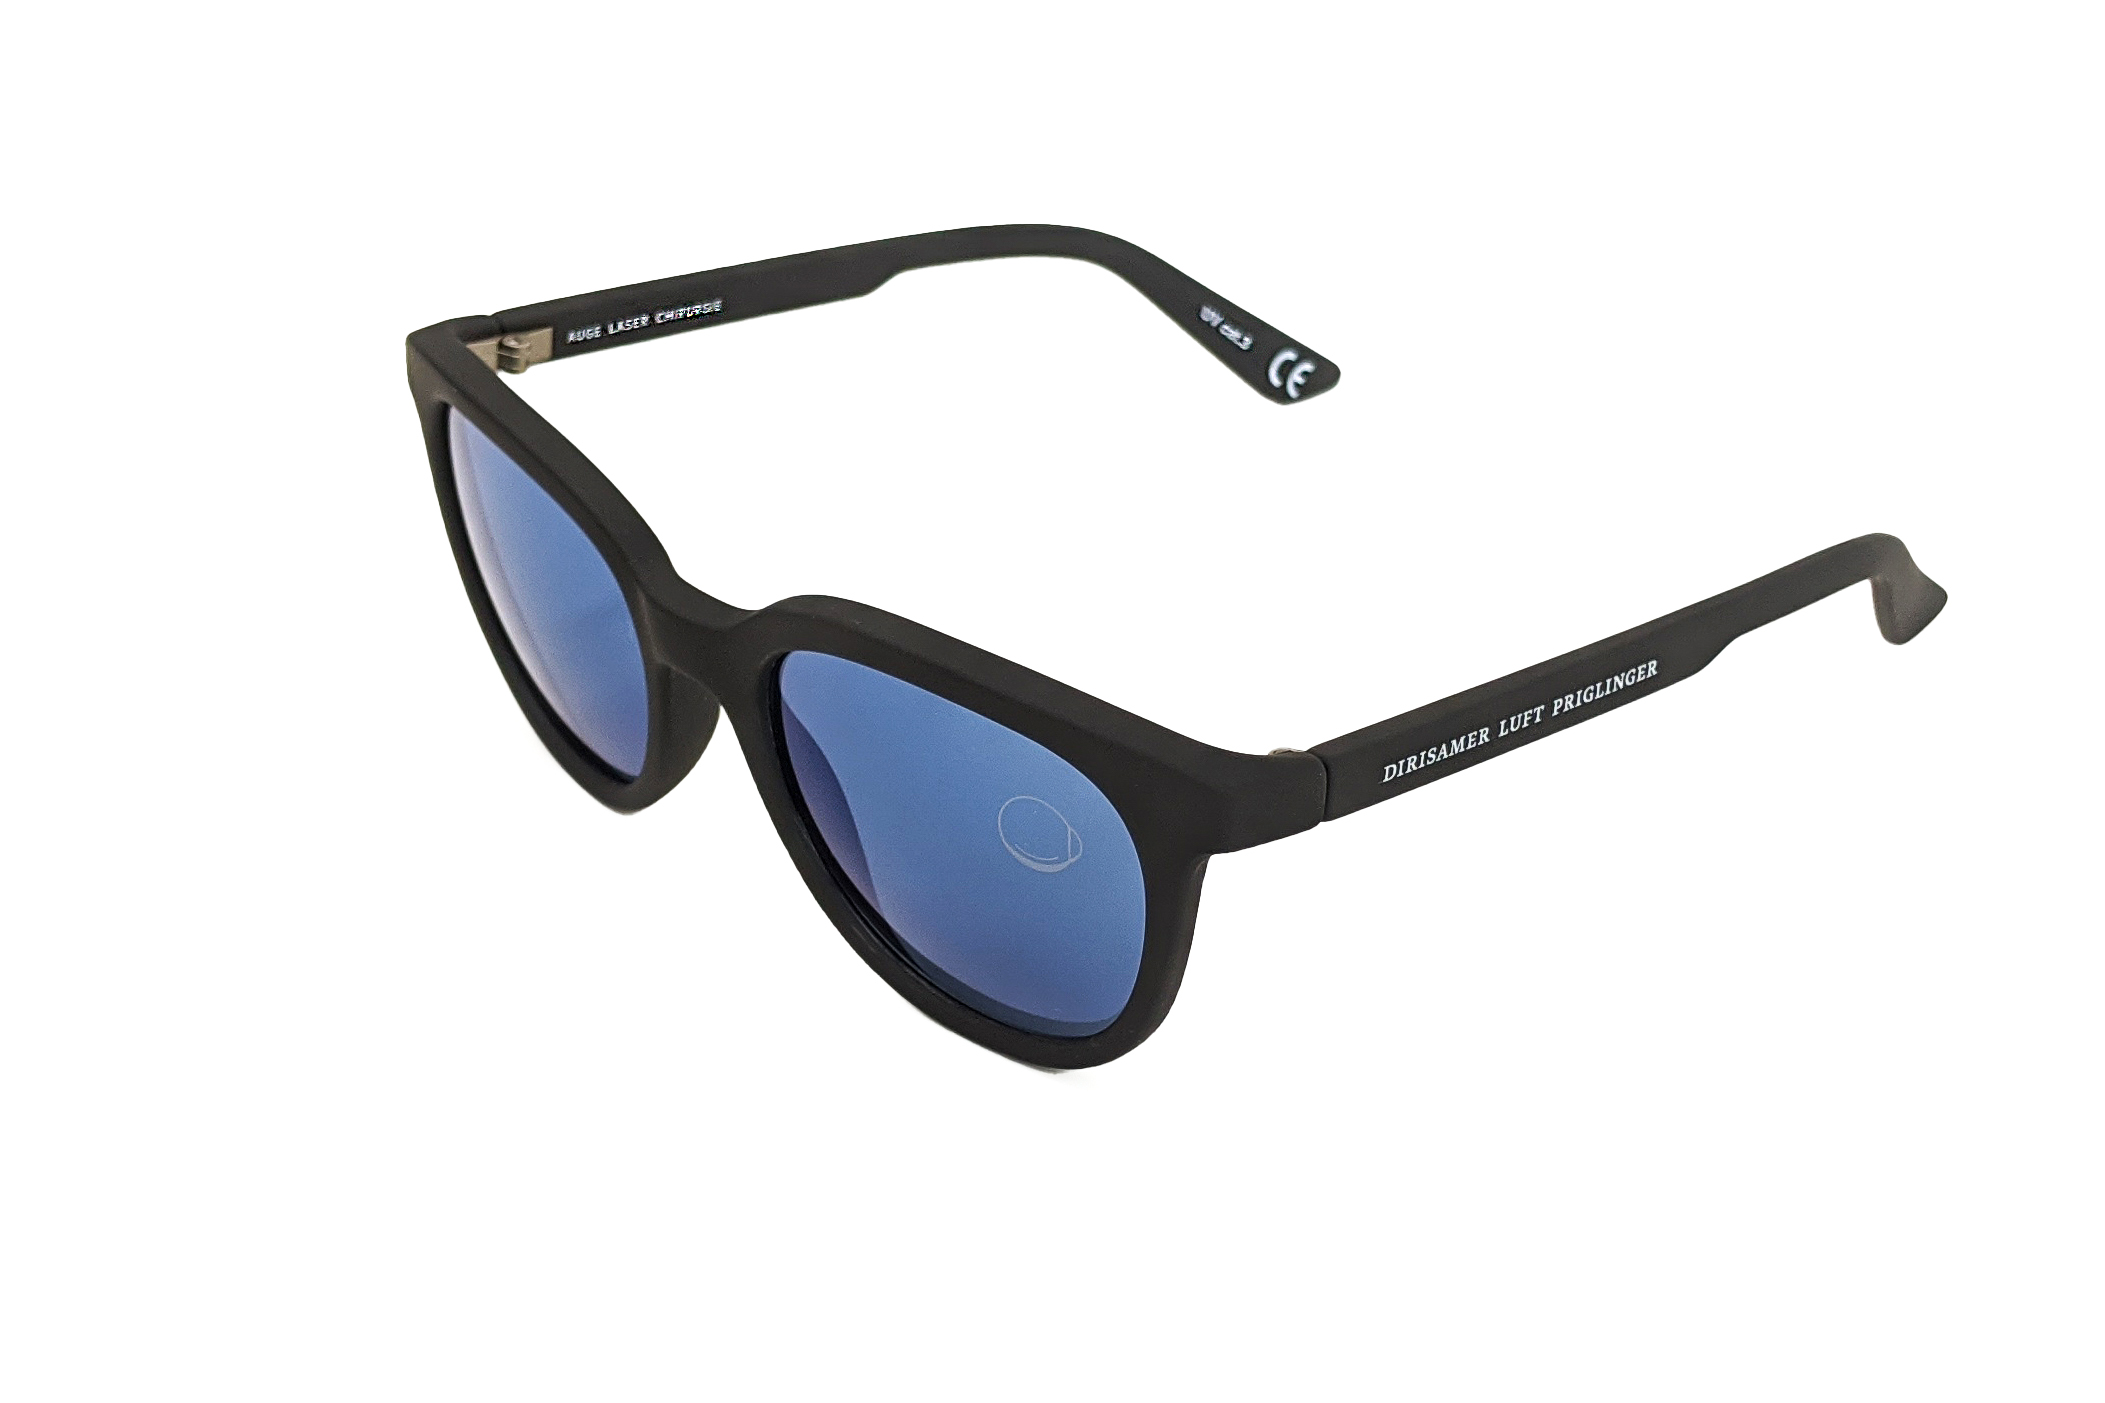 Vision1 Eyewear The Importance of Quality Lens Sunglasses Magazine quality lens sunglasses